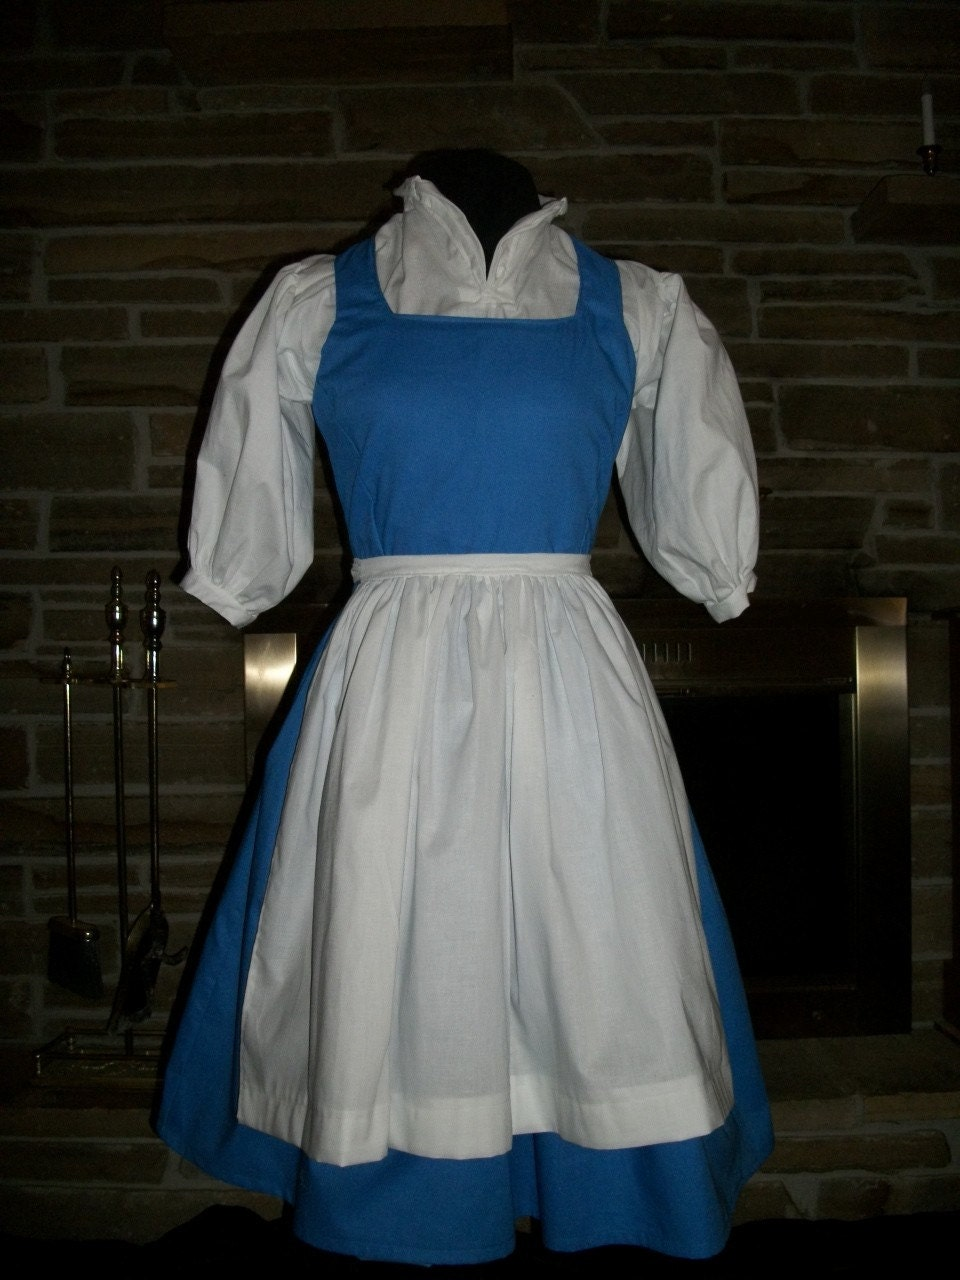 White apron belle - Custom Made Belle Peasant Dress With Apron From Disney S Beauty And The Beast